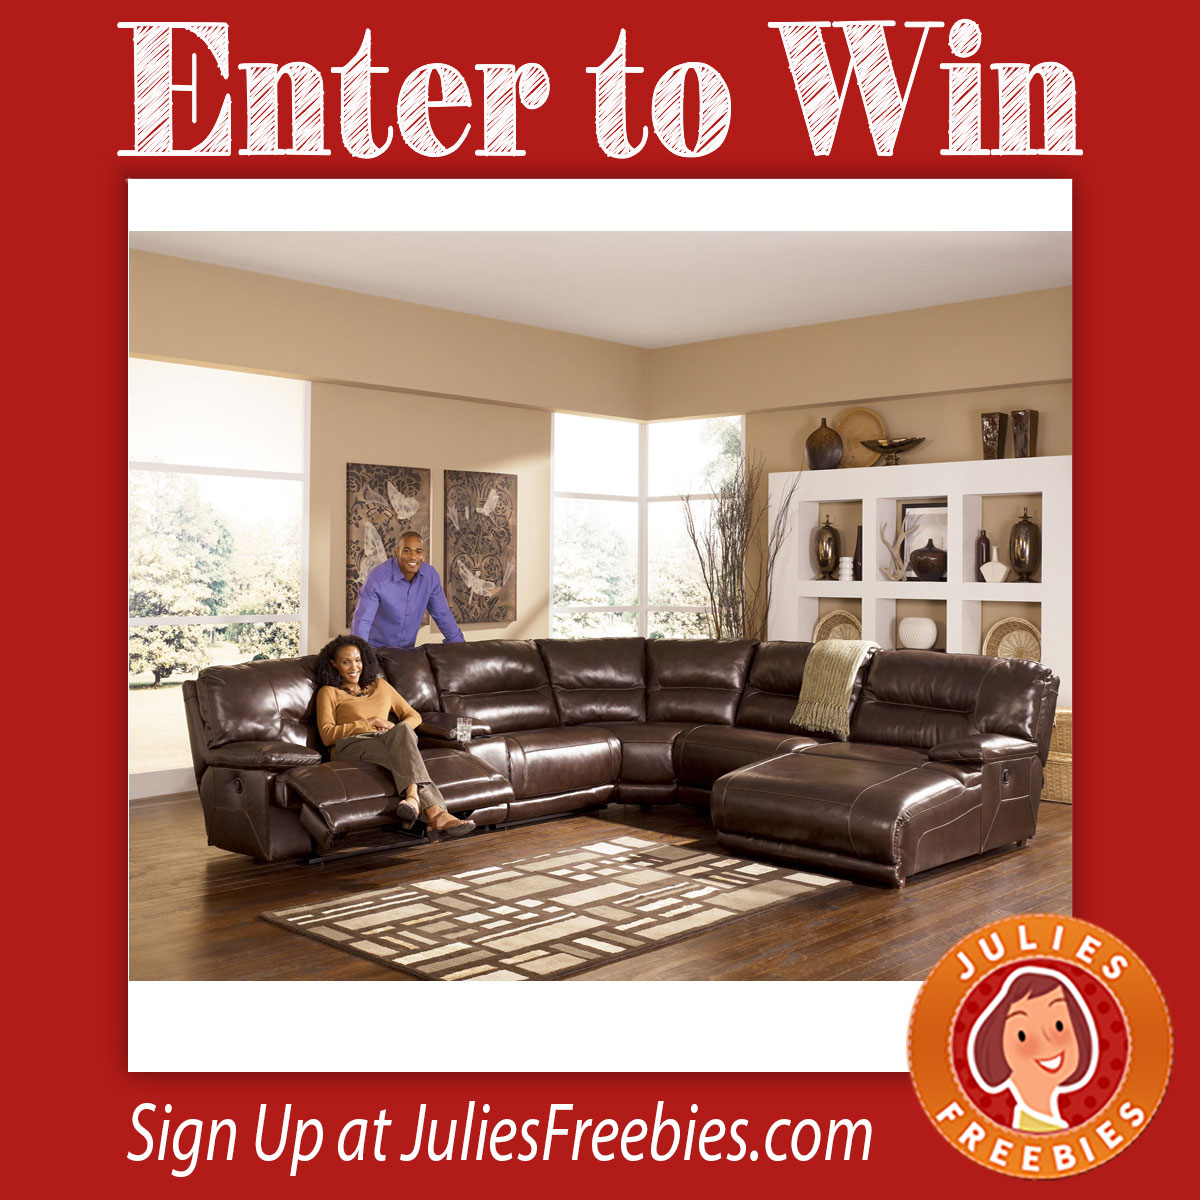 Ashley Home Store: Ashley Homestore Room Makeover Sweepstakes